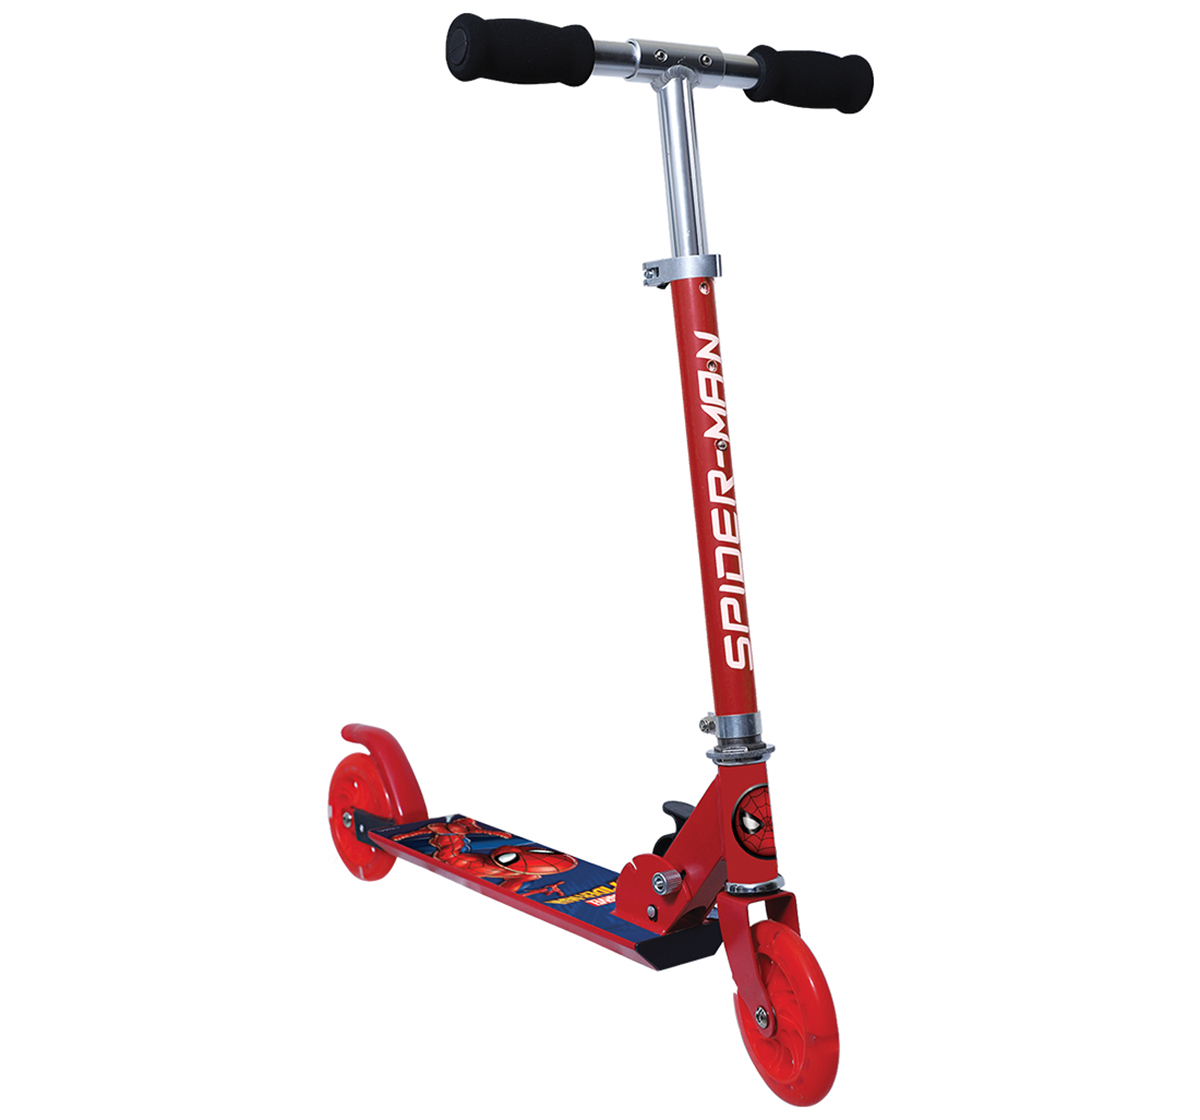 Rowan   Spiderman 2-Wheel Scooter for Kids age 4Y+,  Red